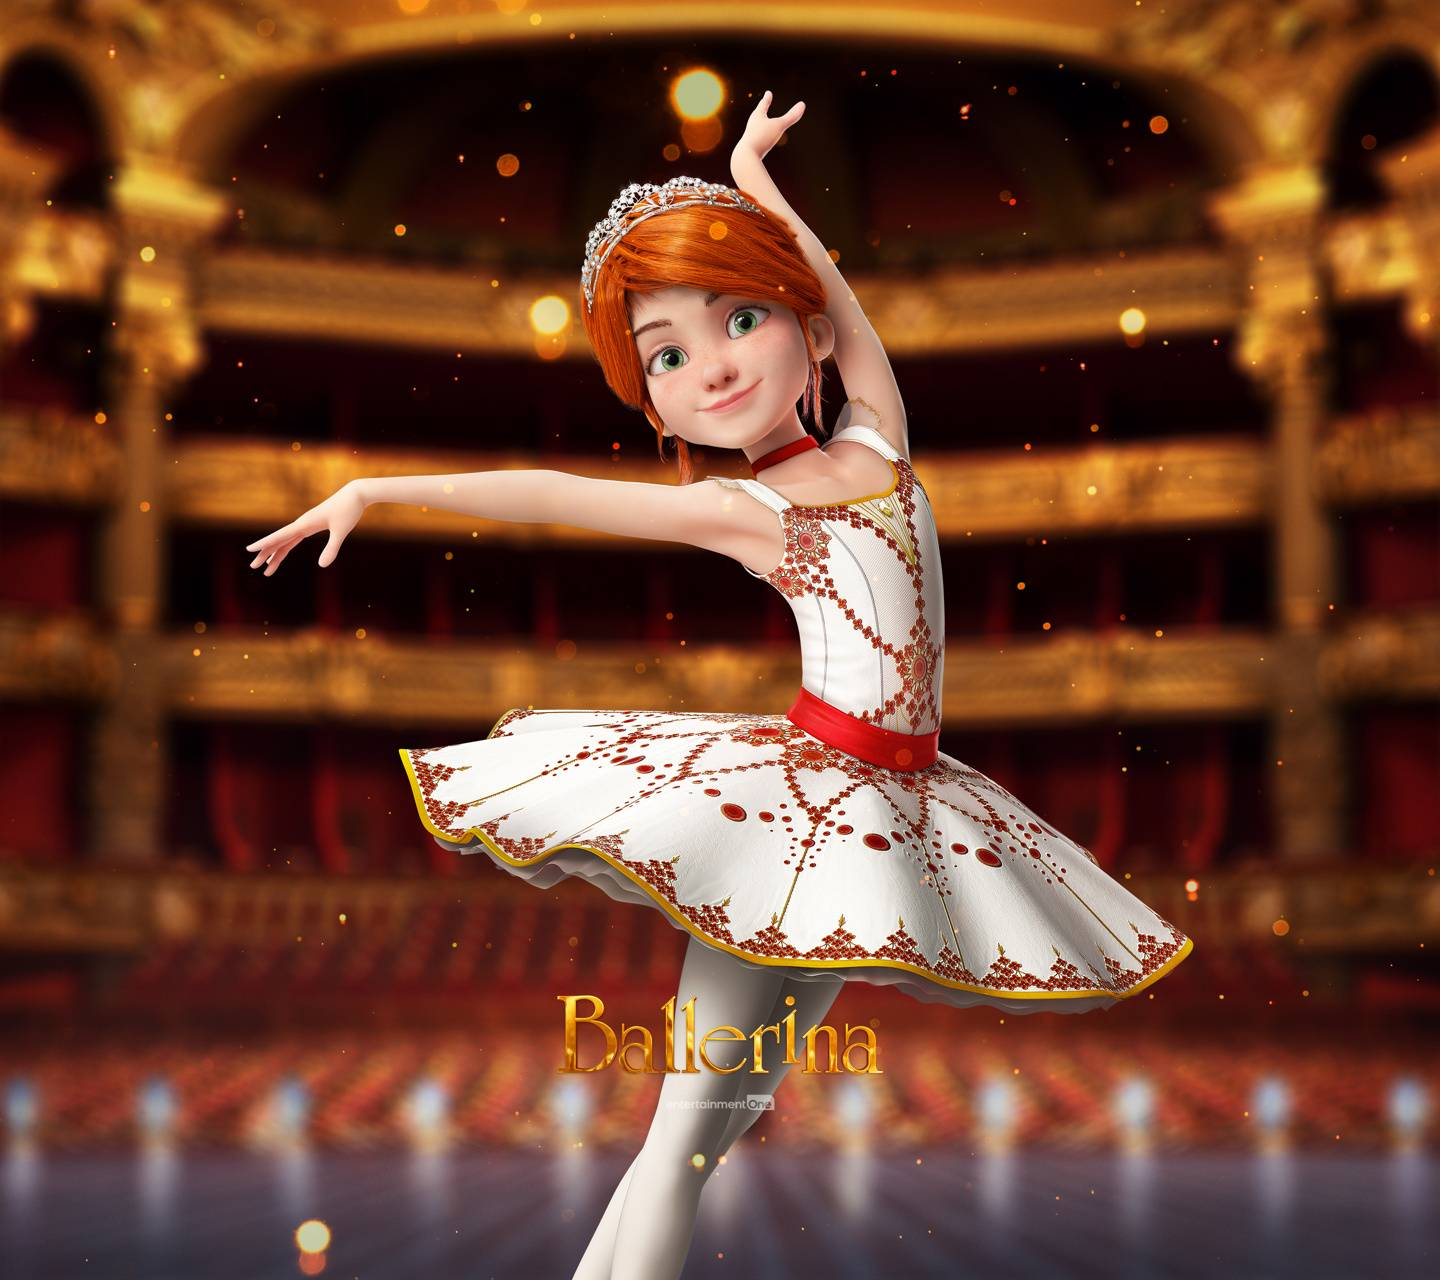 Ballerina Dance Wallpaper By Z Studios D2 Free On Zedge